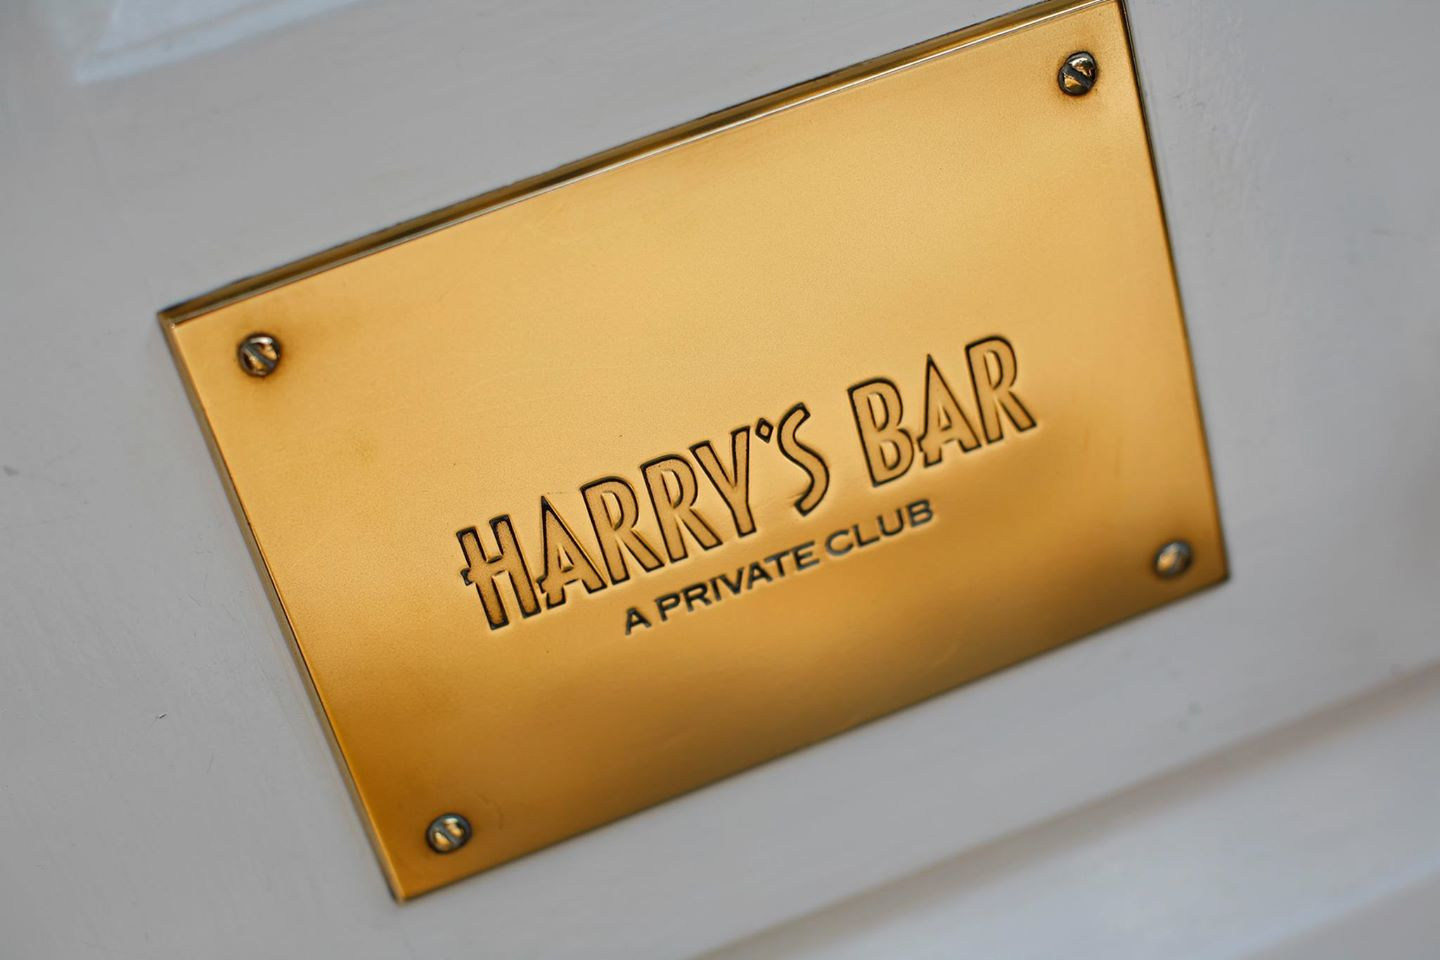 Harry's Bar London Cover Image on XploreUk